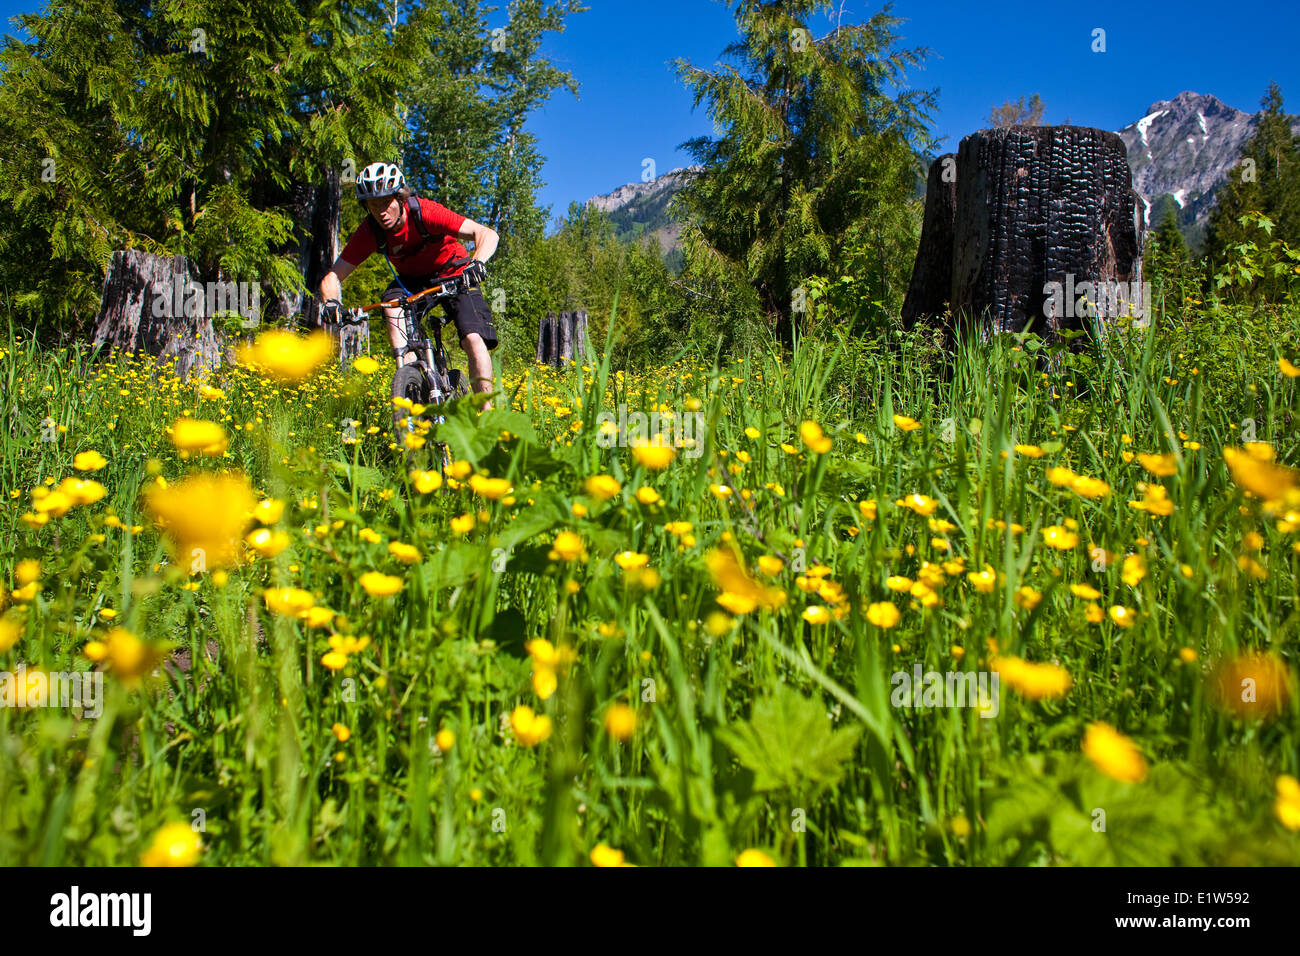 A male mountain biker riding sweet singletrack. Fernie, BC - Stock Image